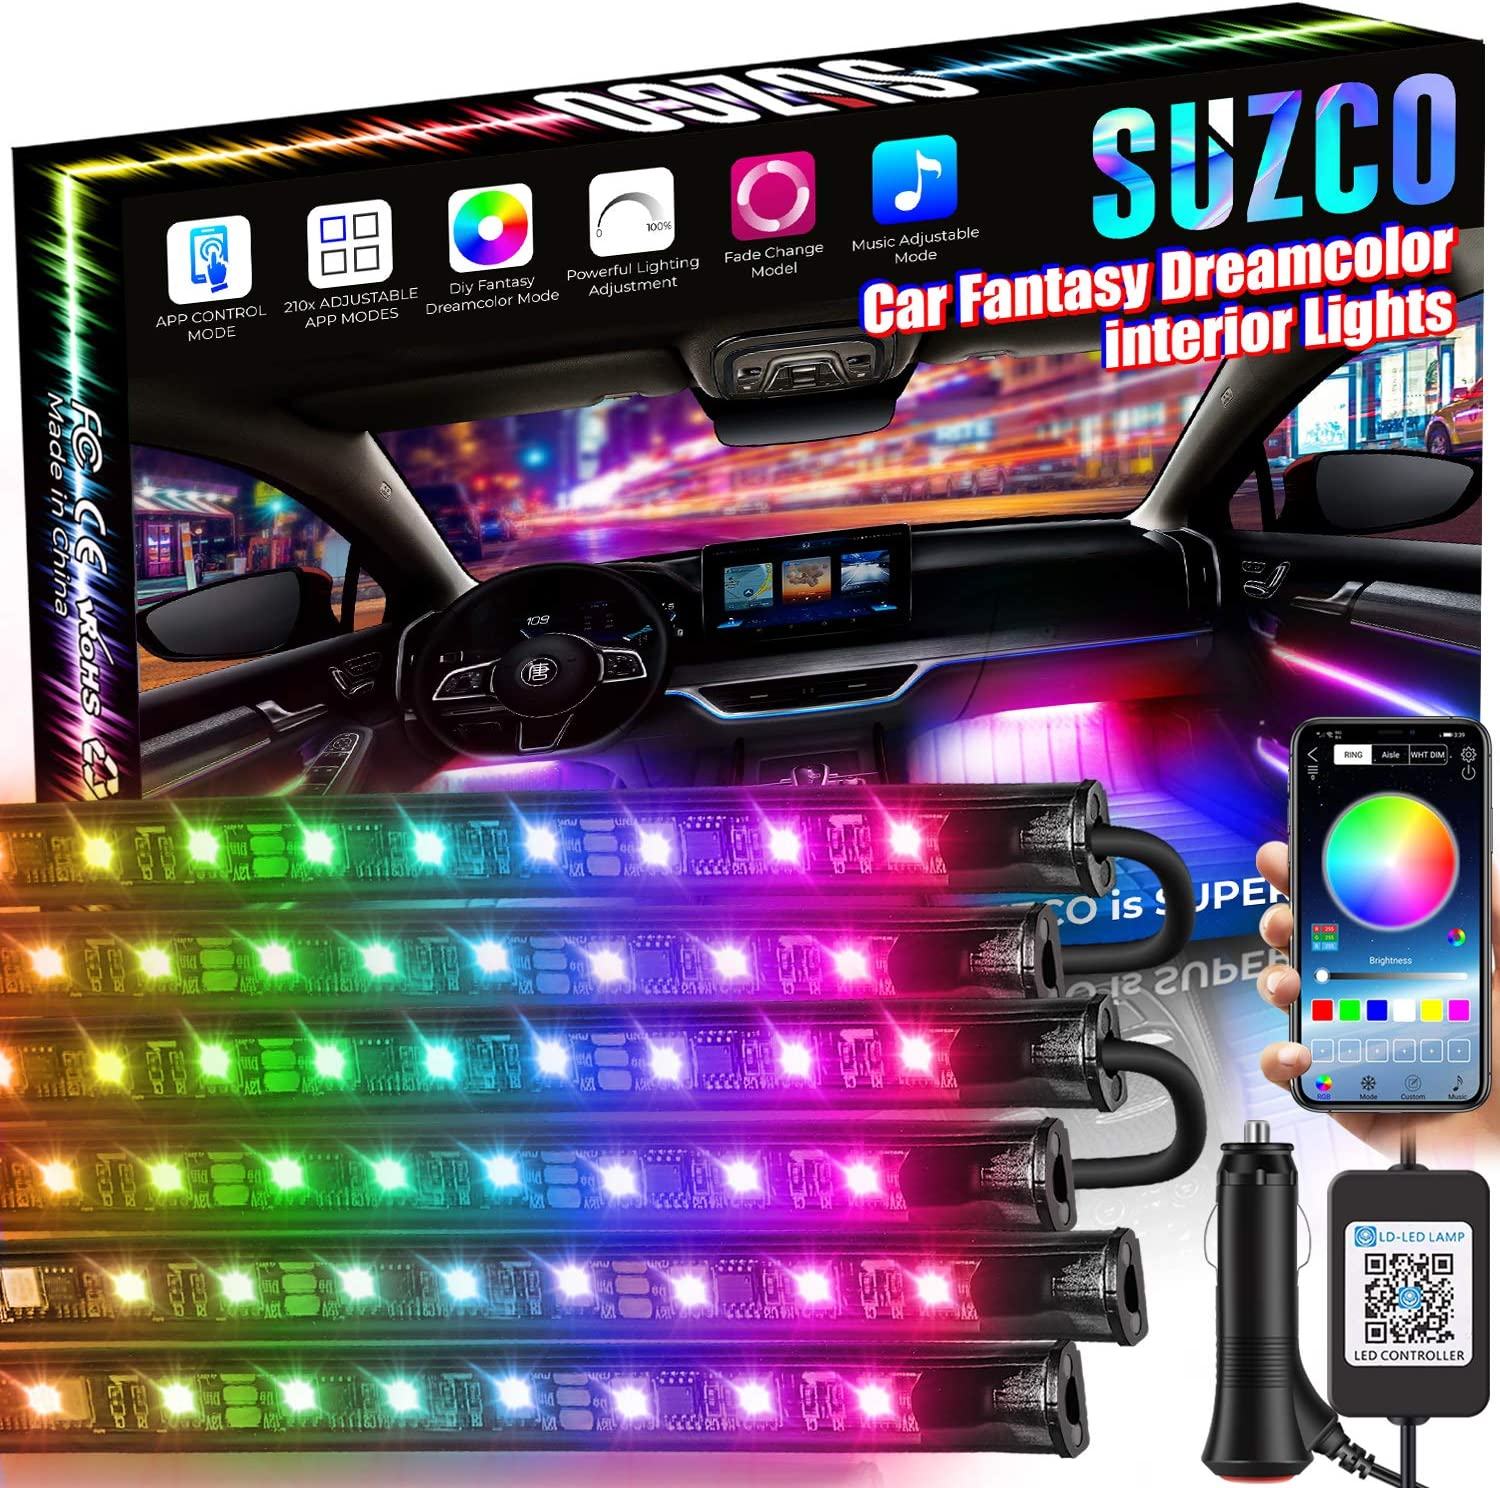 SUZCO 6-Pack Car Rainbow/Dreamcolor Cool Interior Atmosphere Neon Lights, 72-LEDs Car Glow Floor Strip Light Kit with APP Remote, CUSTOM-MADE 4-in-2 Multicolor Under Dash Light 12V with USB Charger